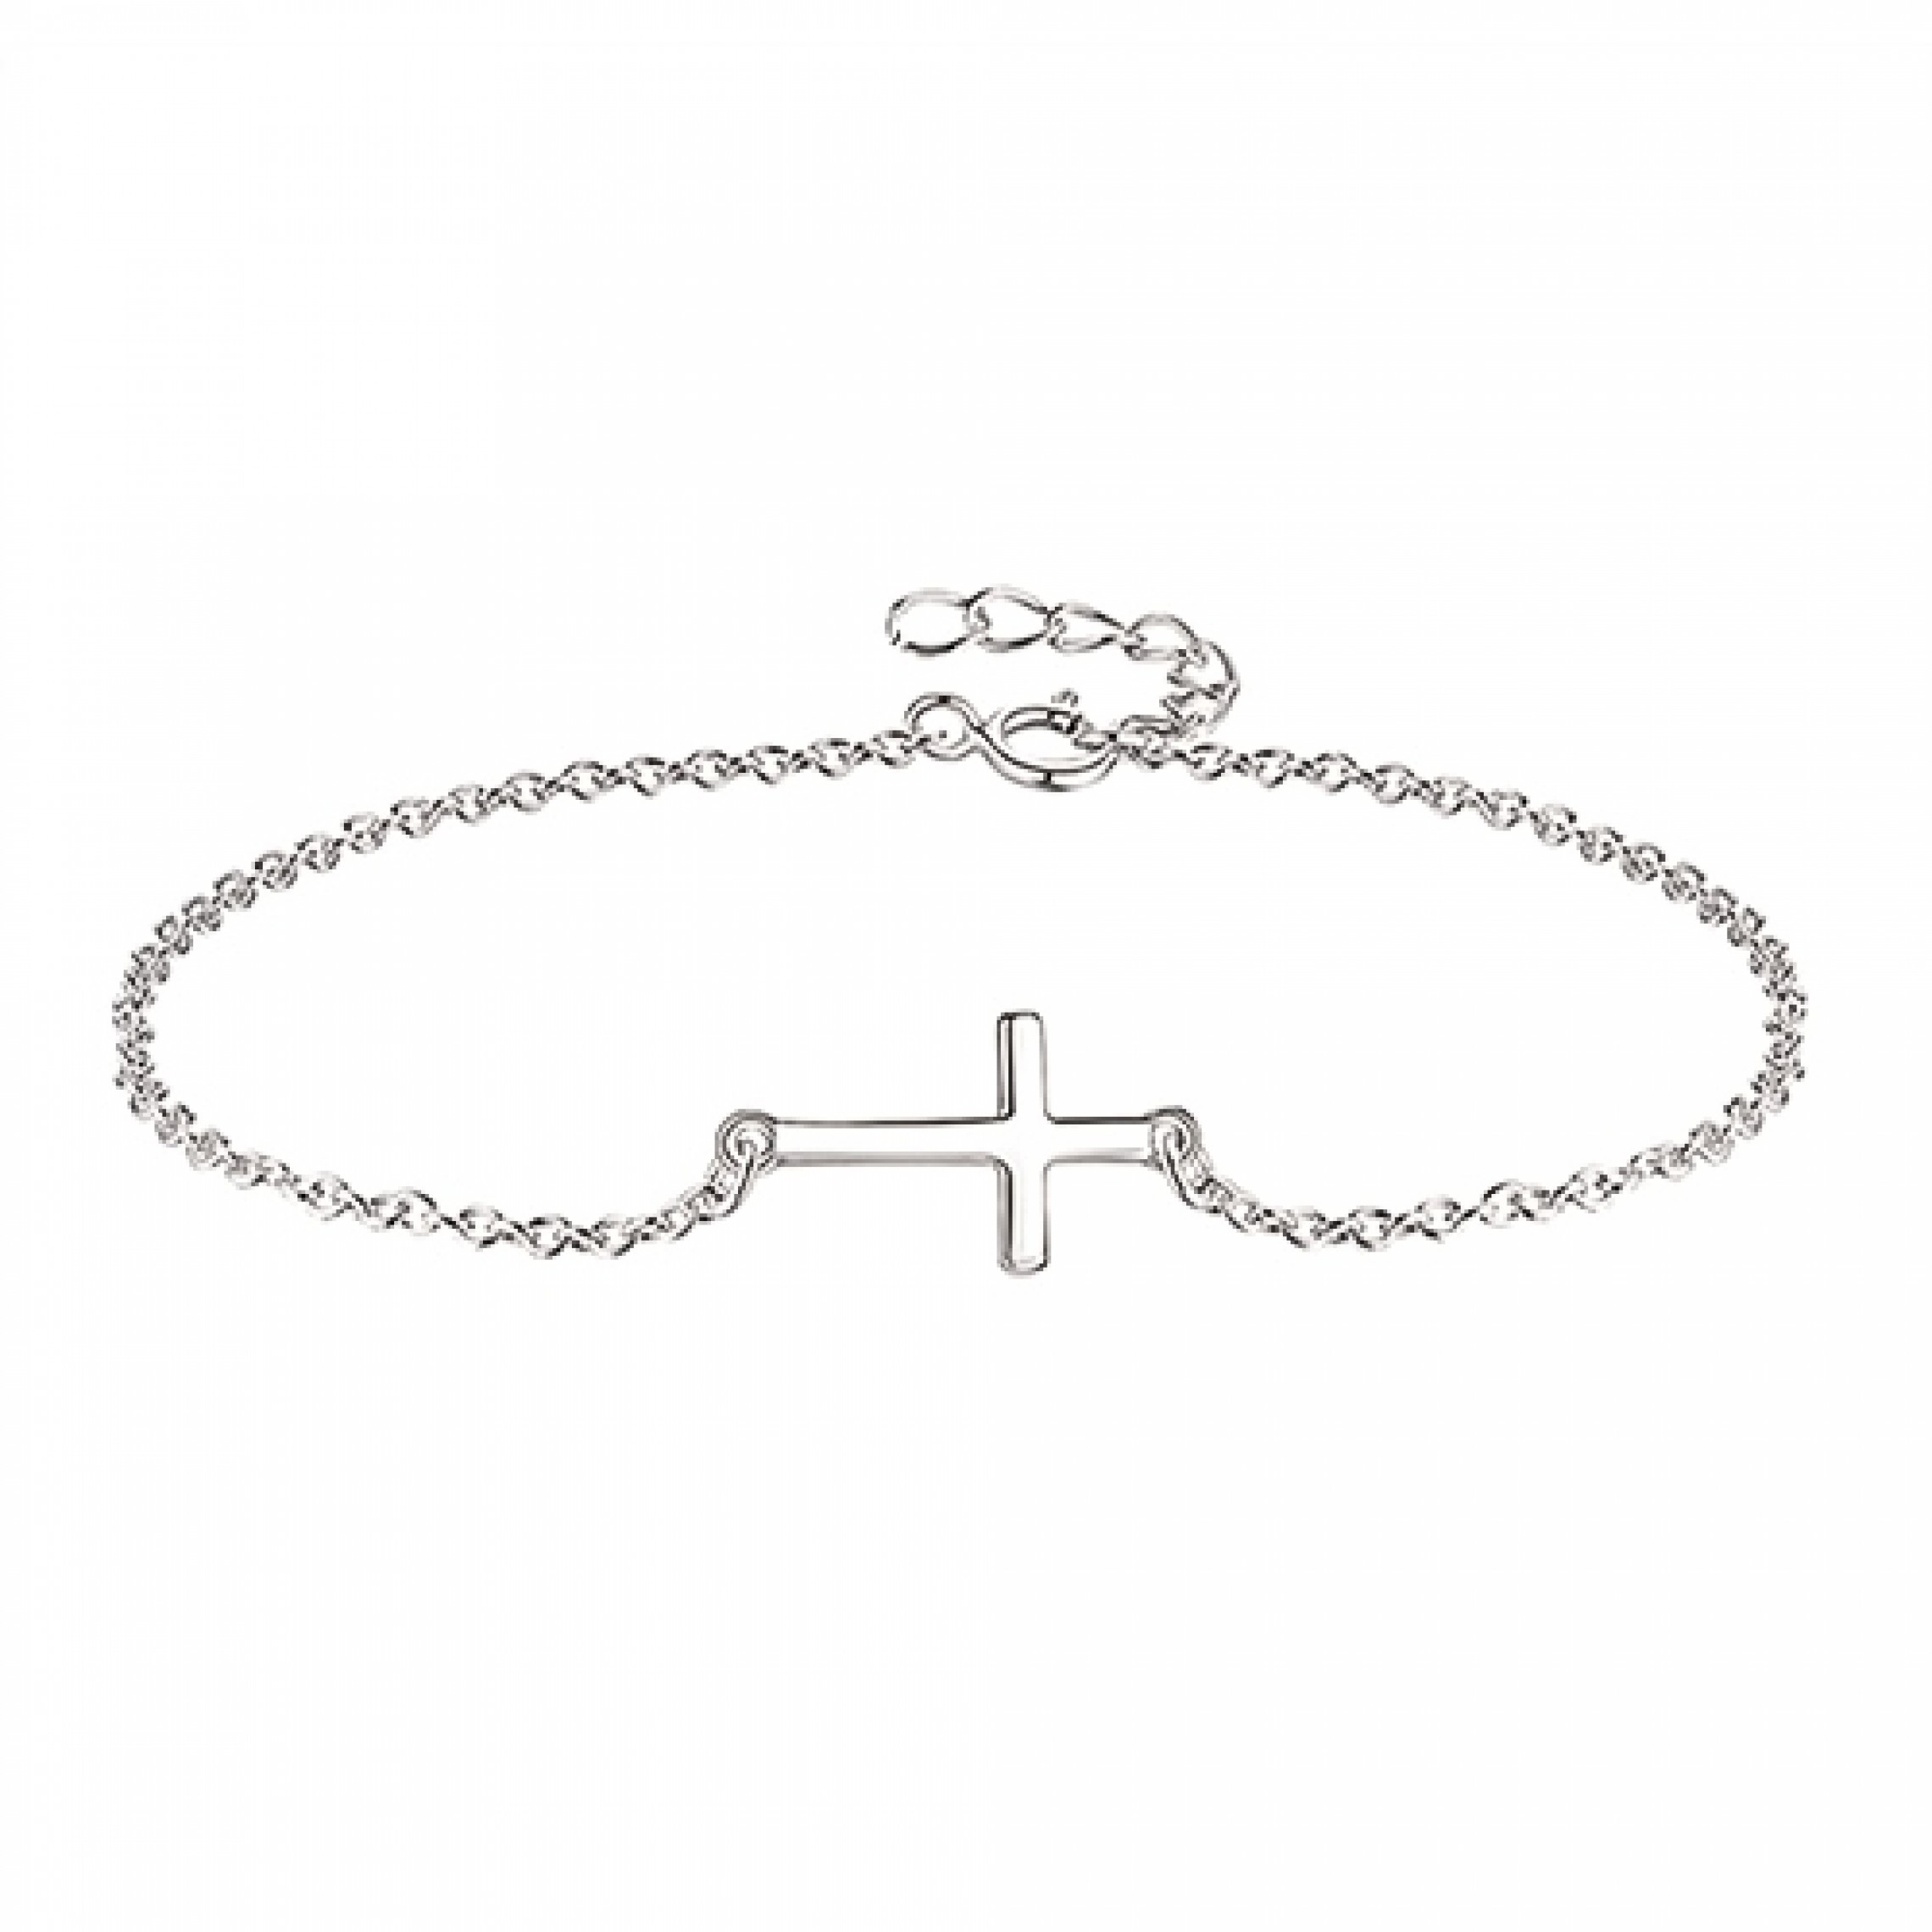 JB-180077 Evil Eye 925 Sterling Silver CZ Bracelet Cross